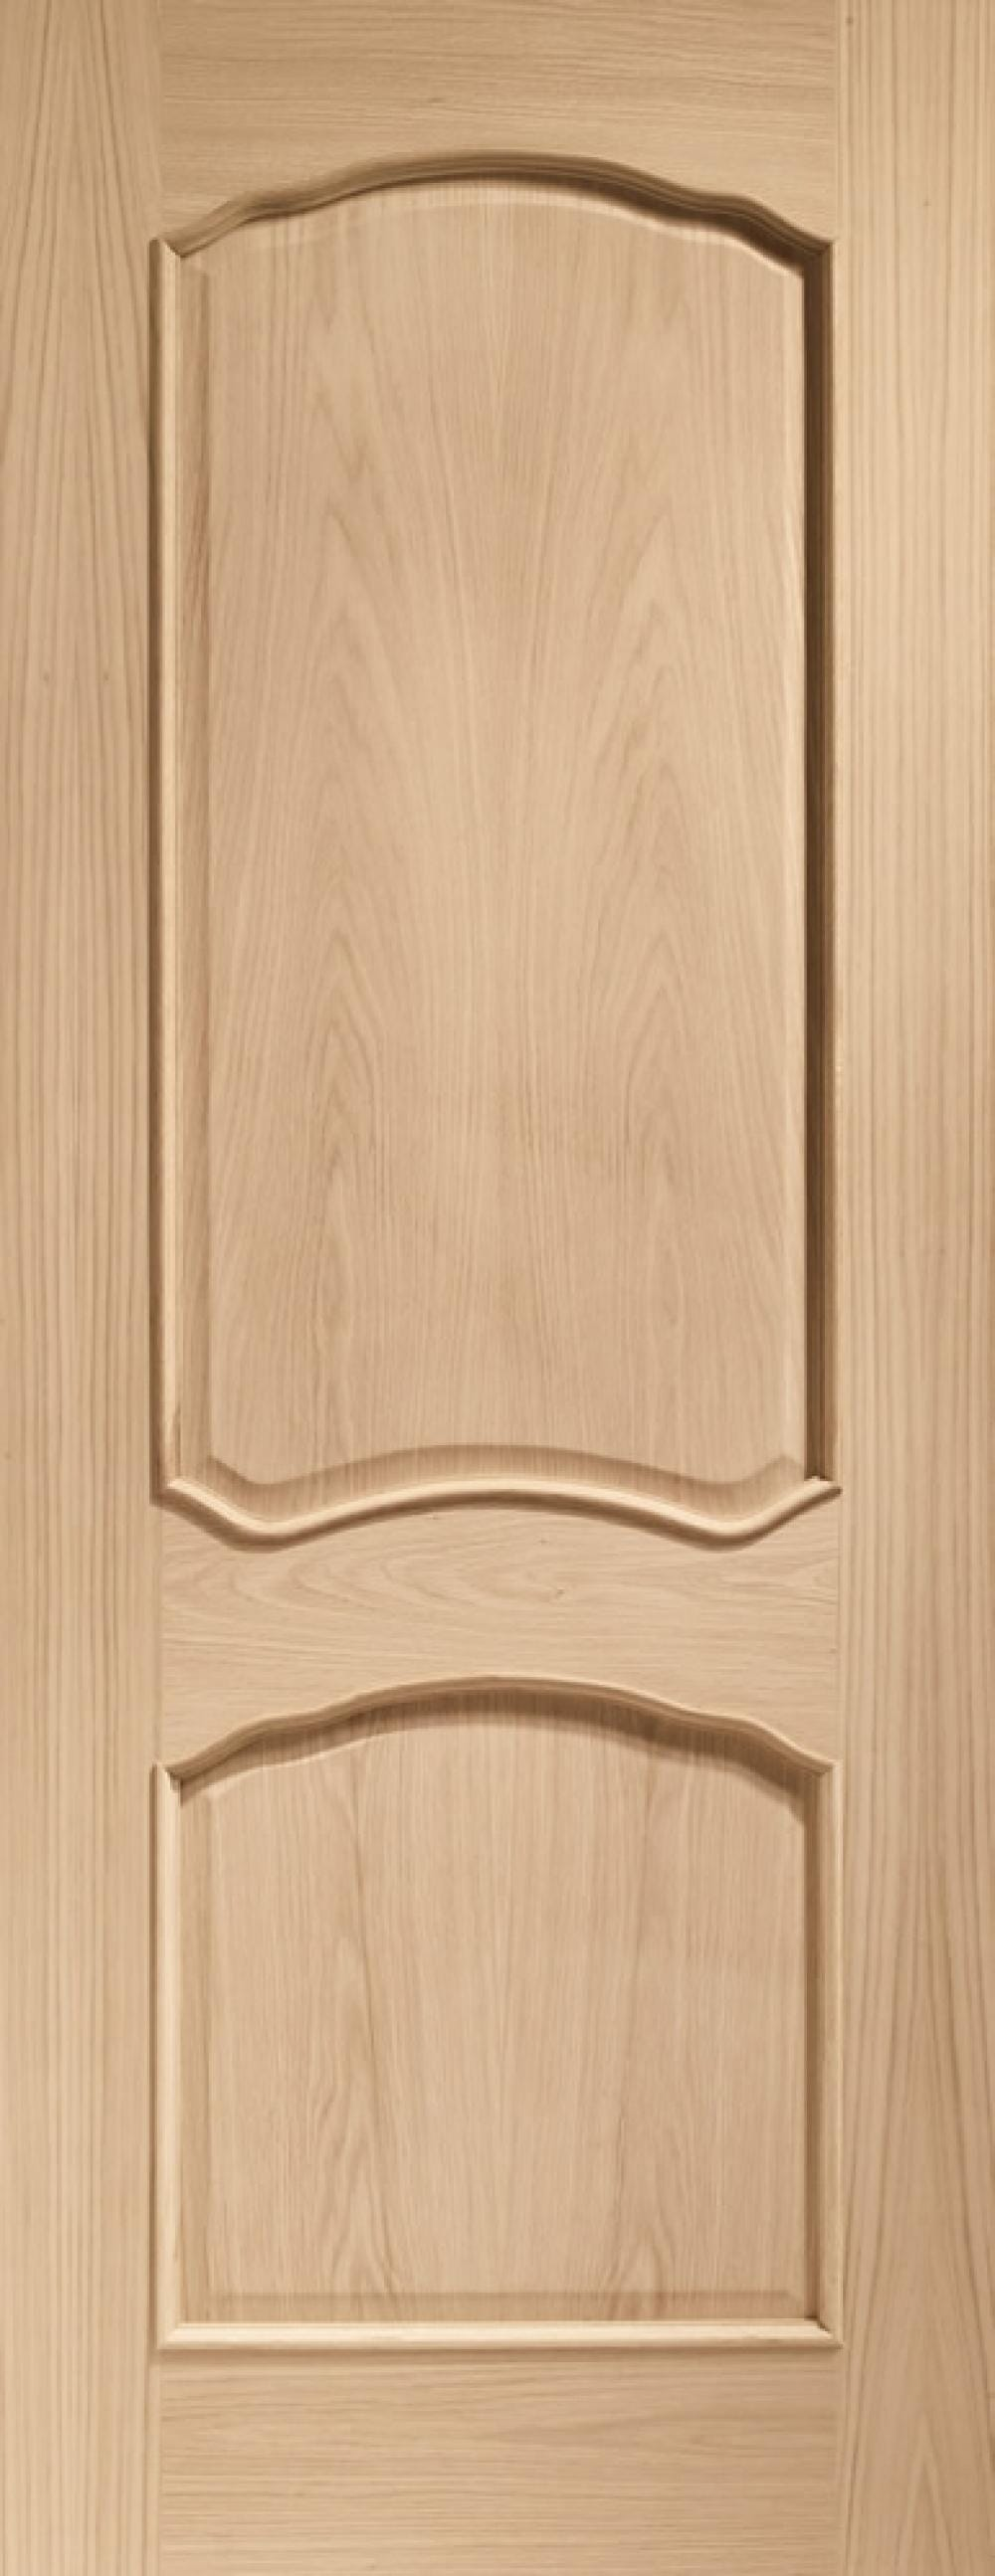 Xl Louis Oak Prefinished - Raised Mouldings Image